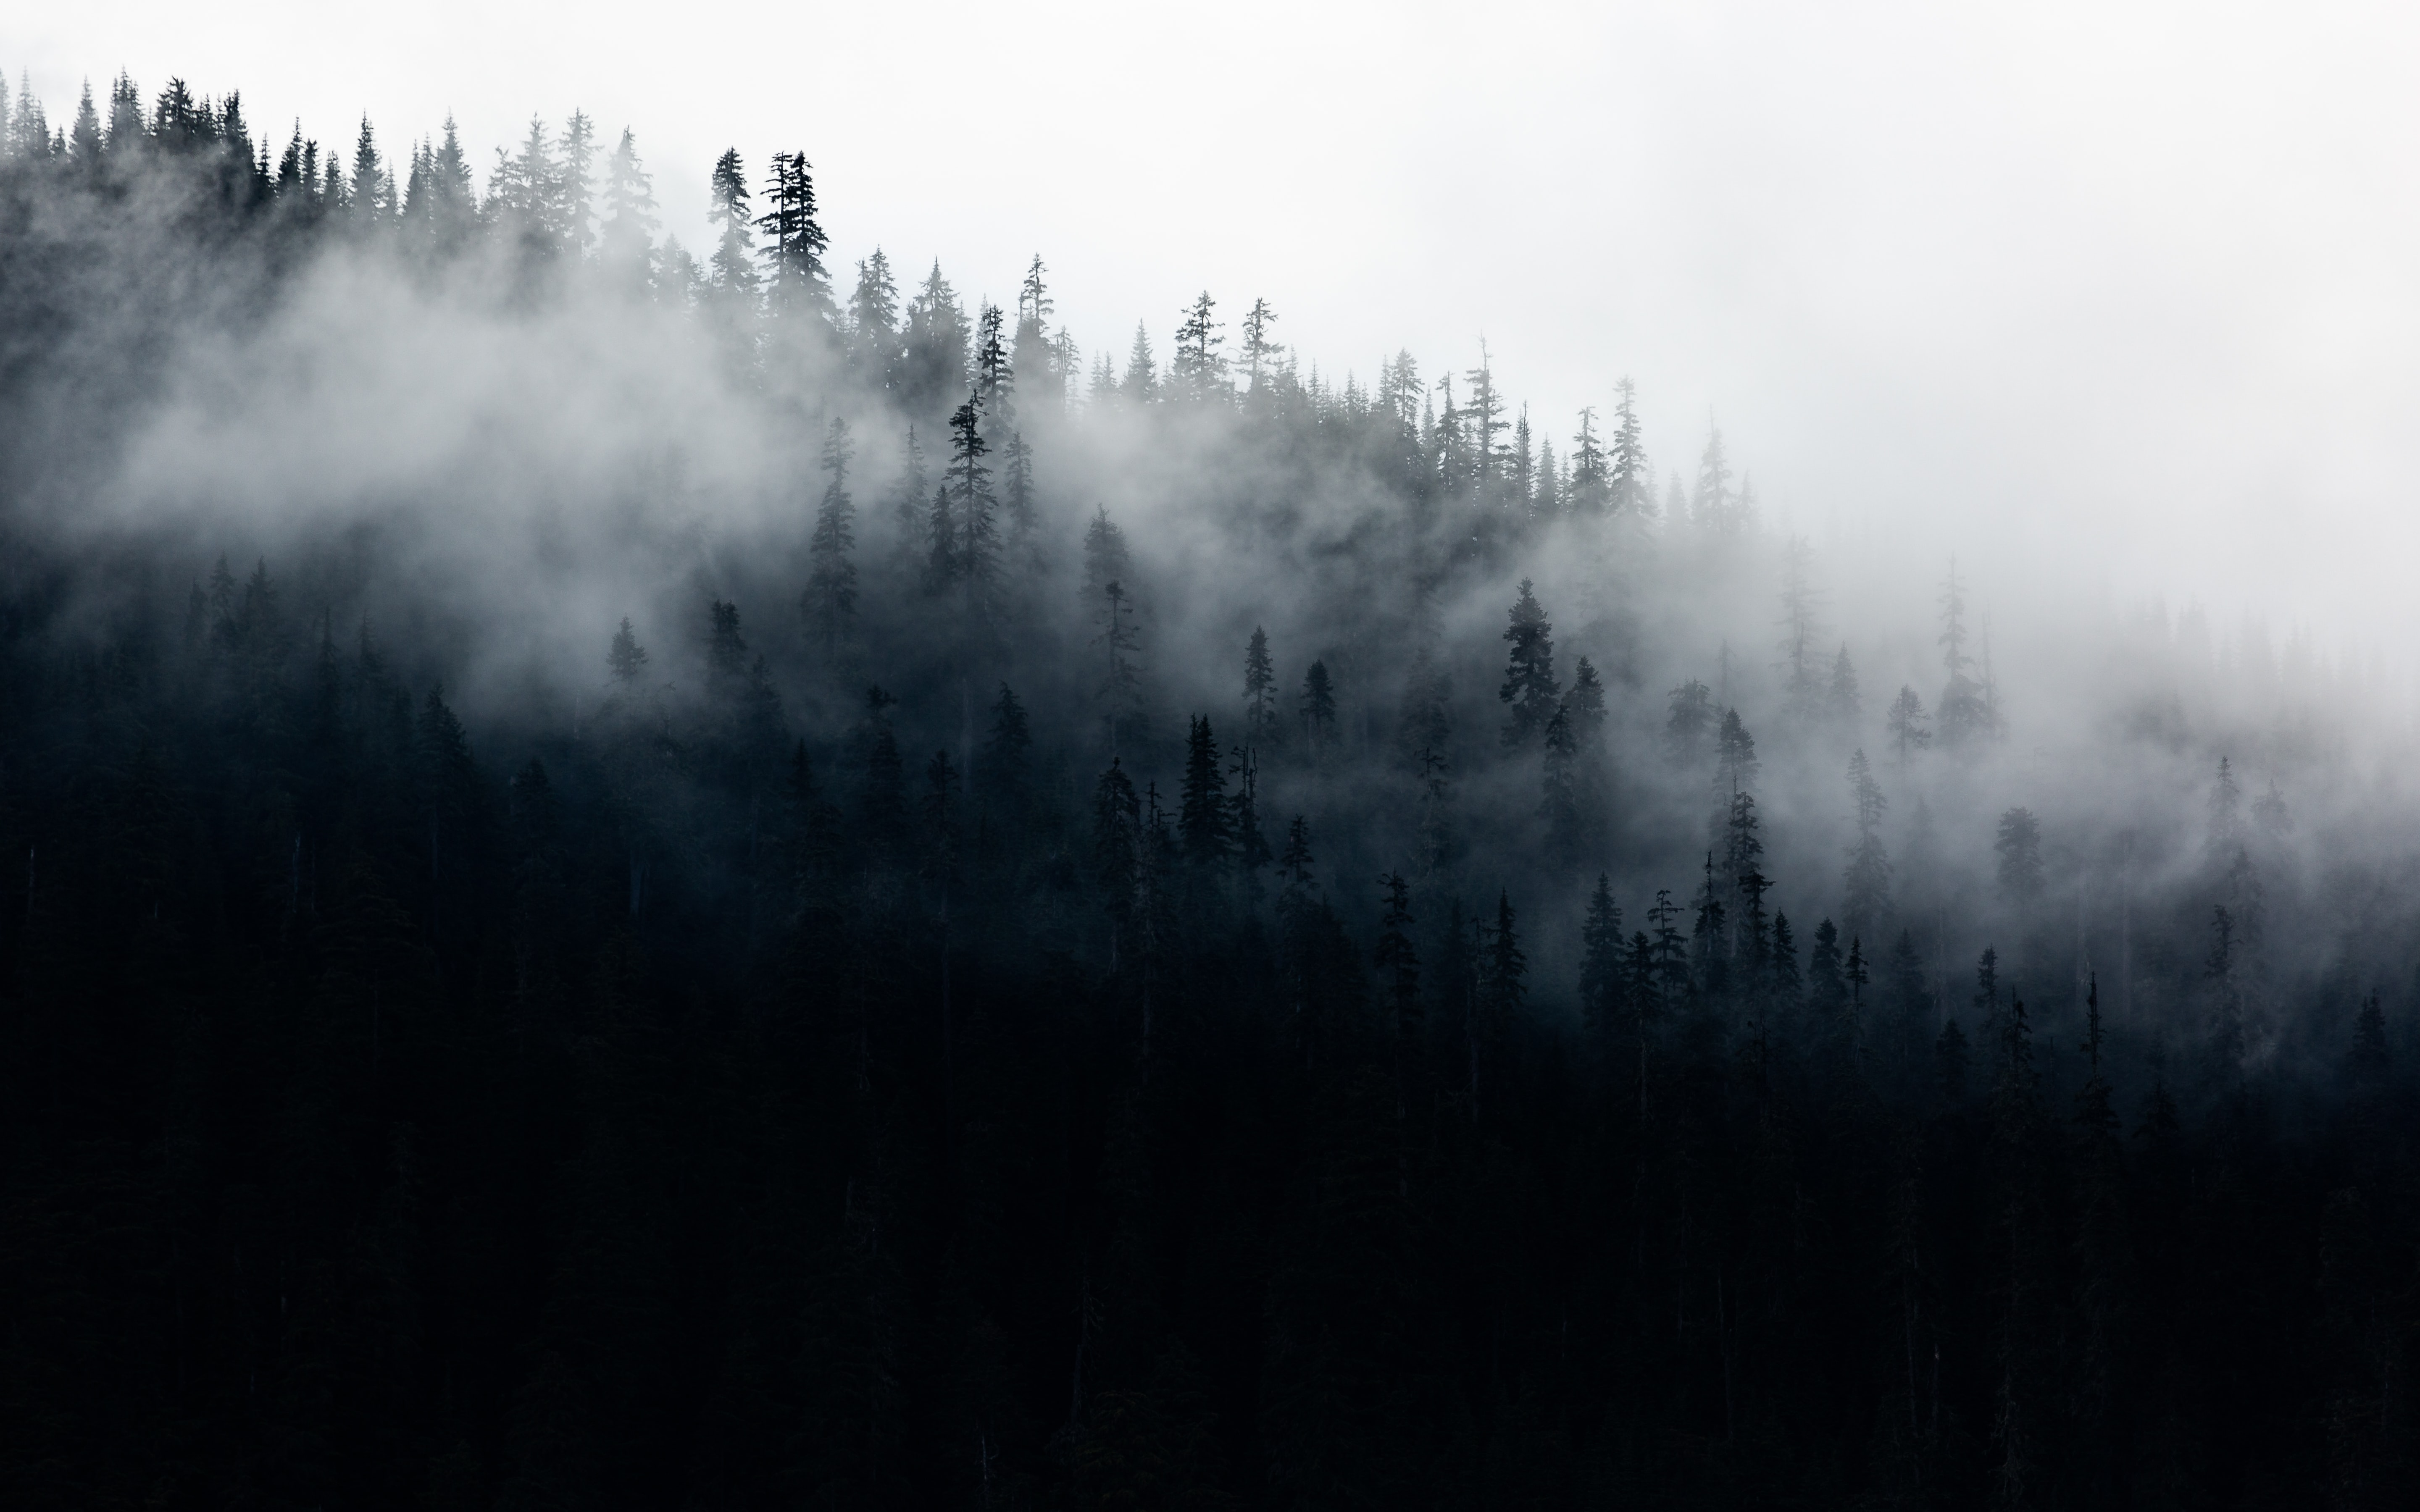 green trees surrounded by fog